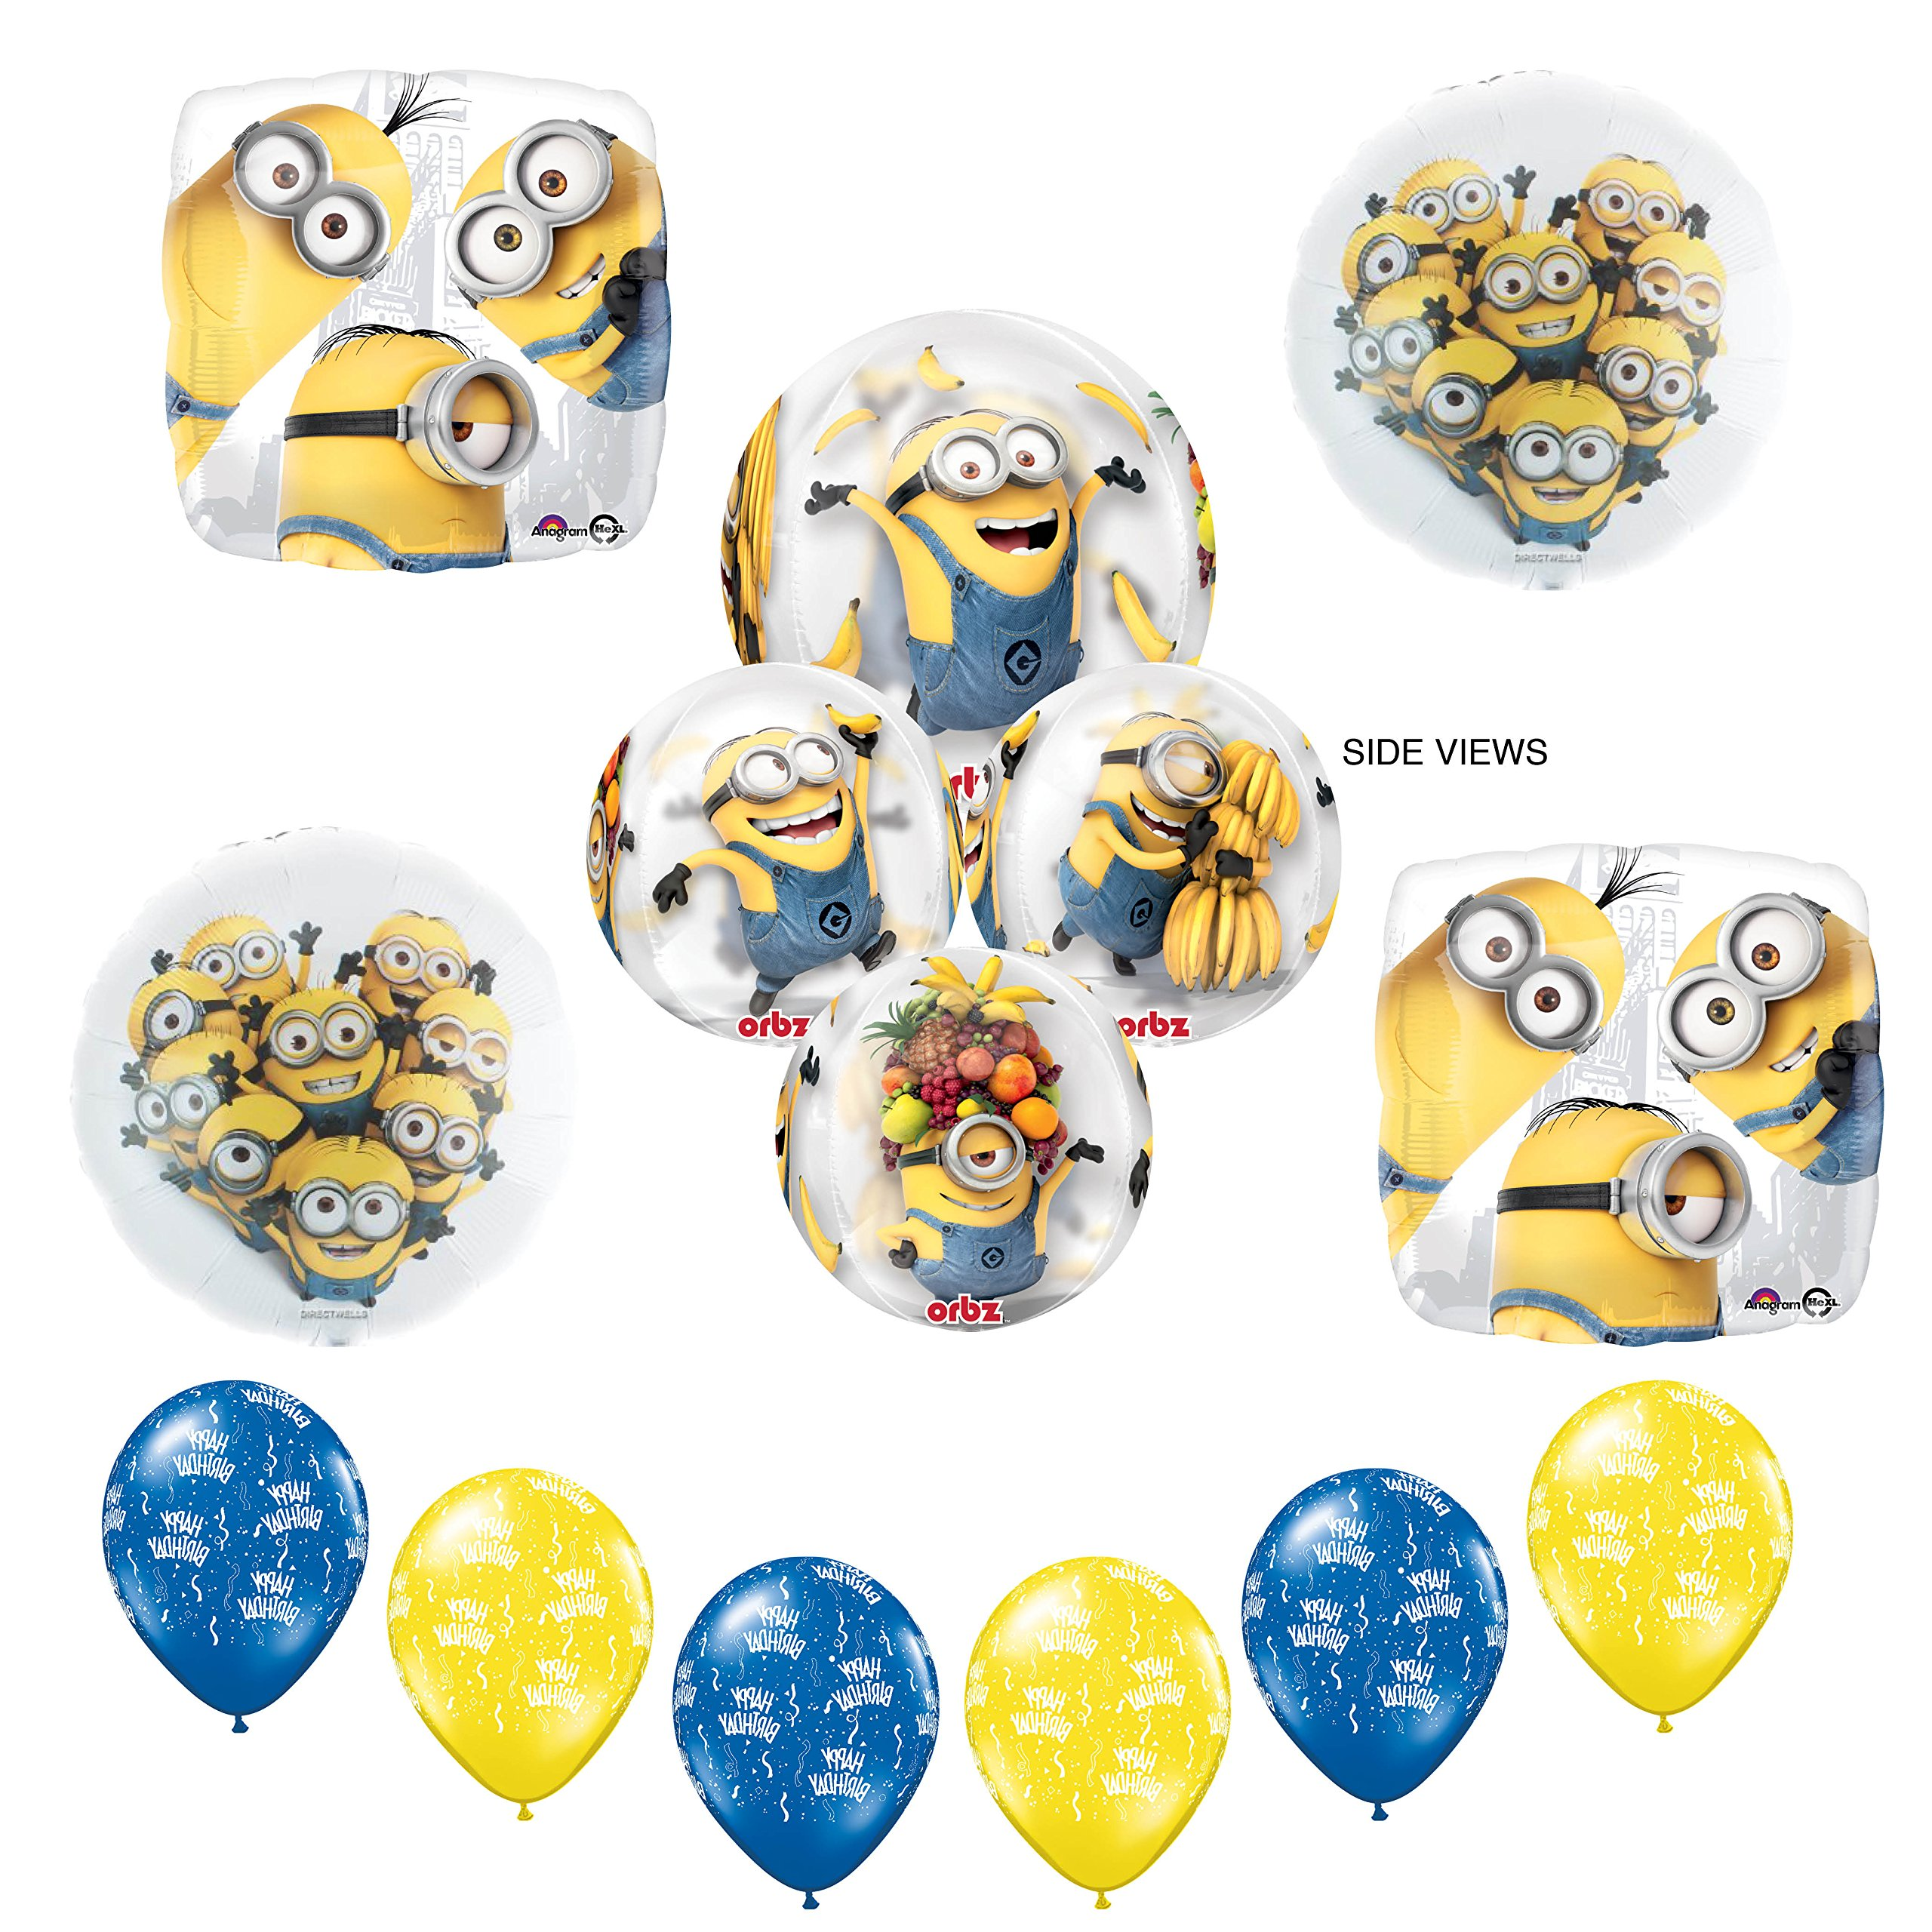 Buy Official Despicable Me 2 Minions 6th Birthday Card Age 6 In